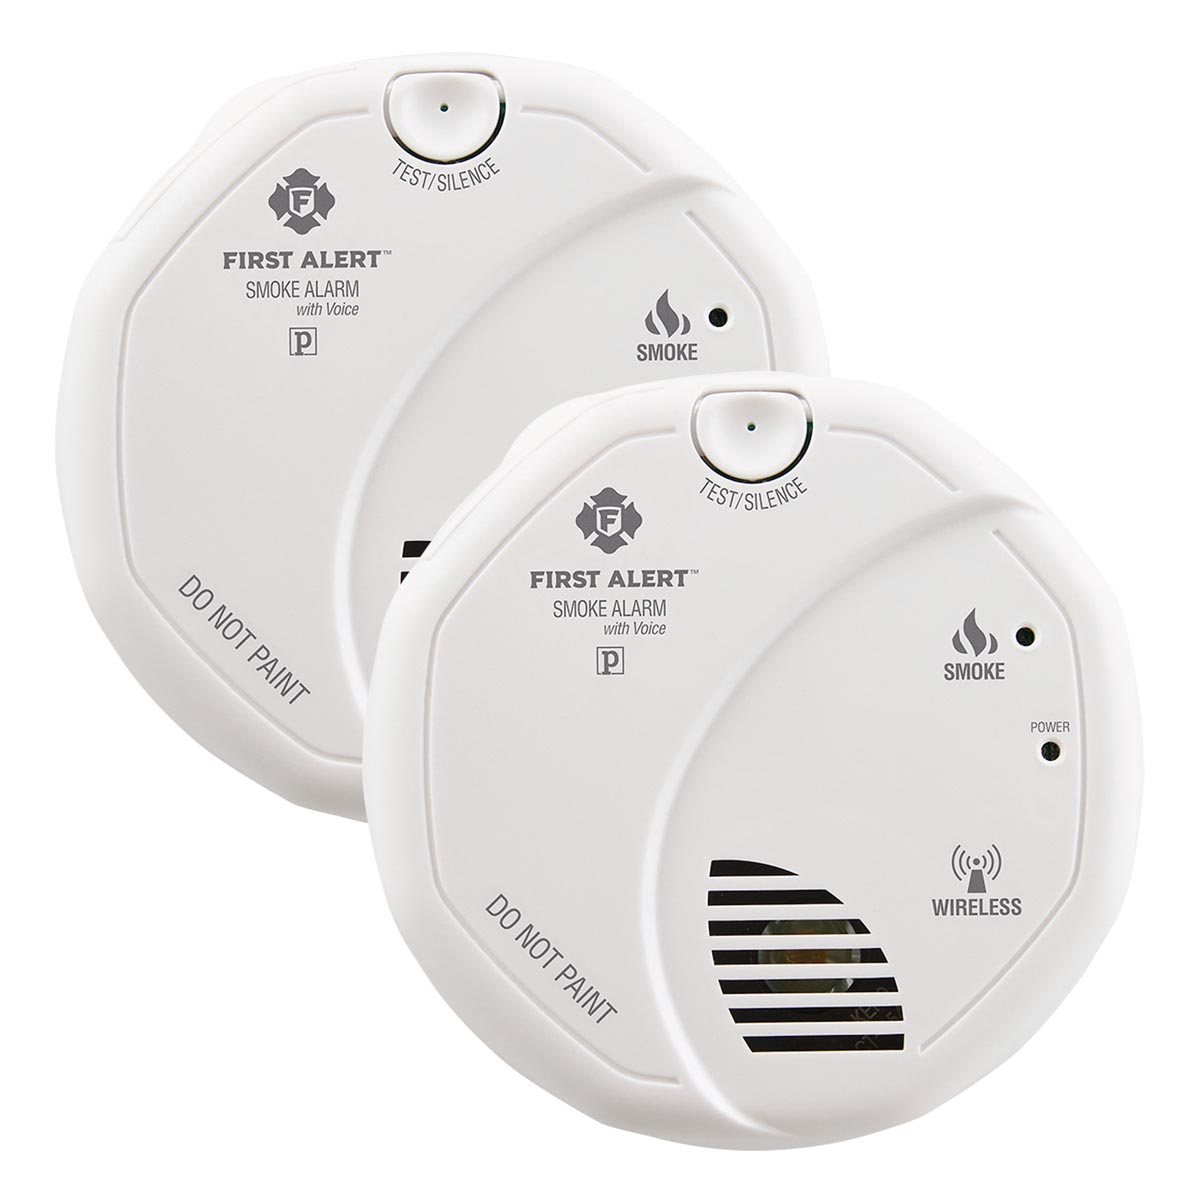 hight resolution of first alert sa511cn2 3st wireless battery operated smoke alarm with voice location twin pack first alert store